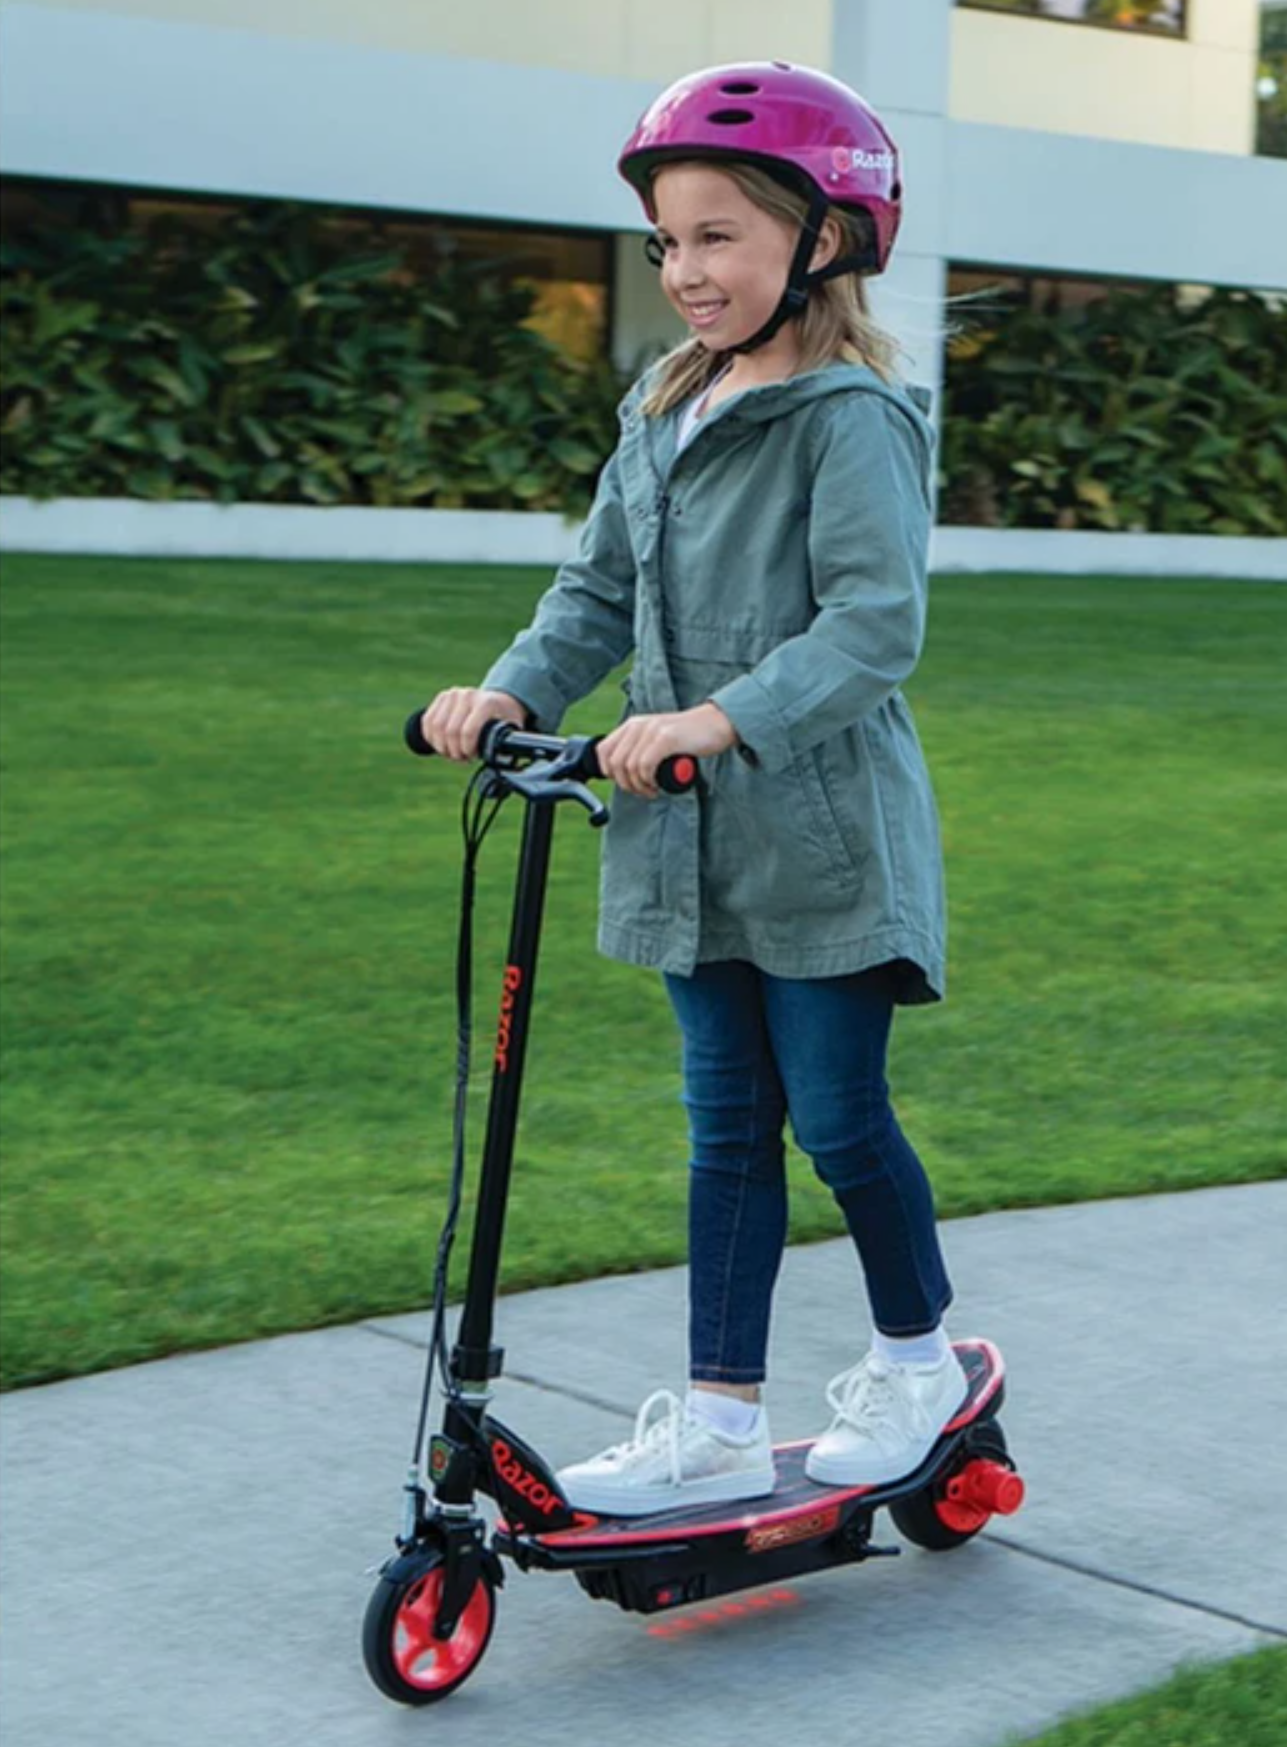 10-Year old girl riding the Glow e-scooter